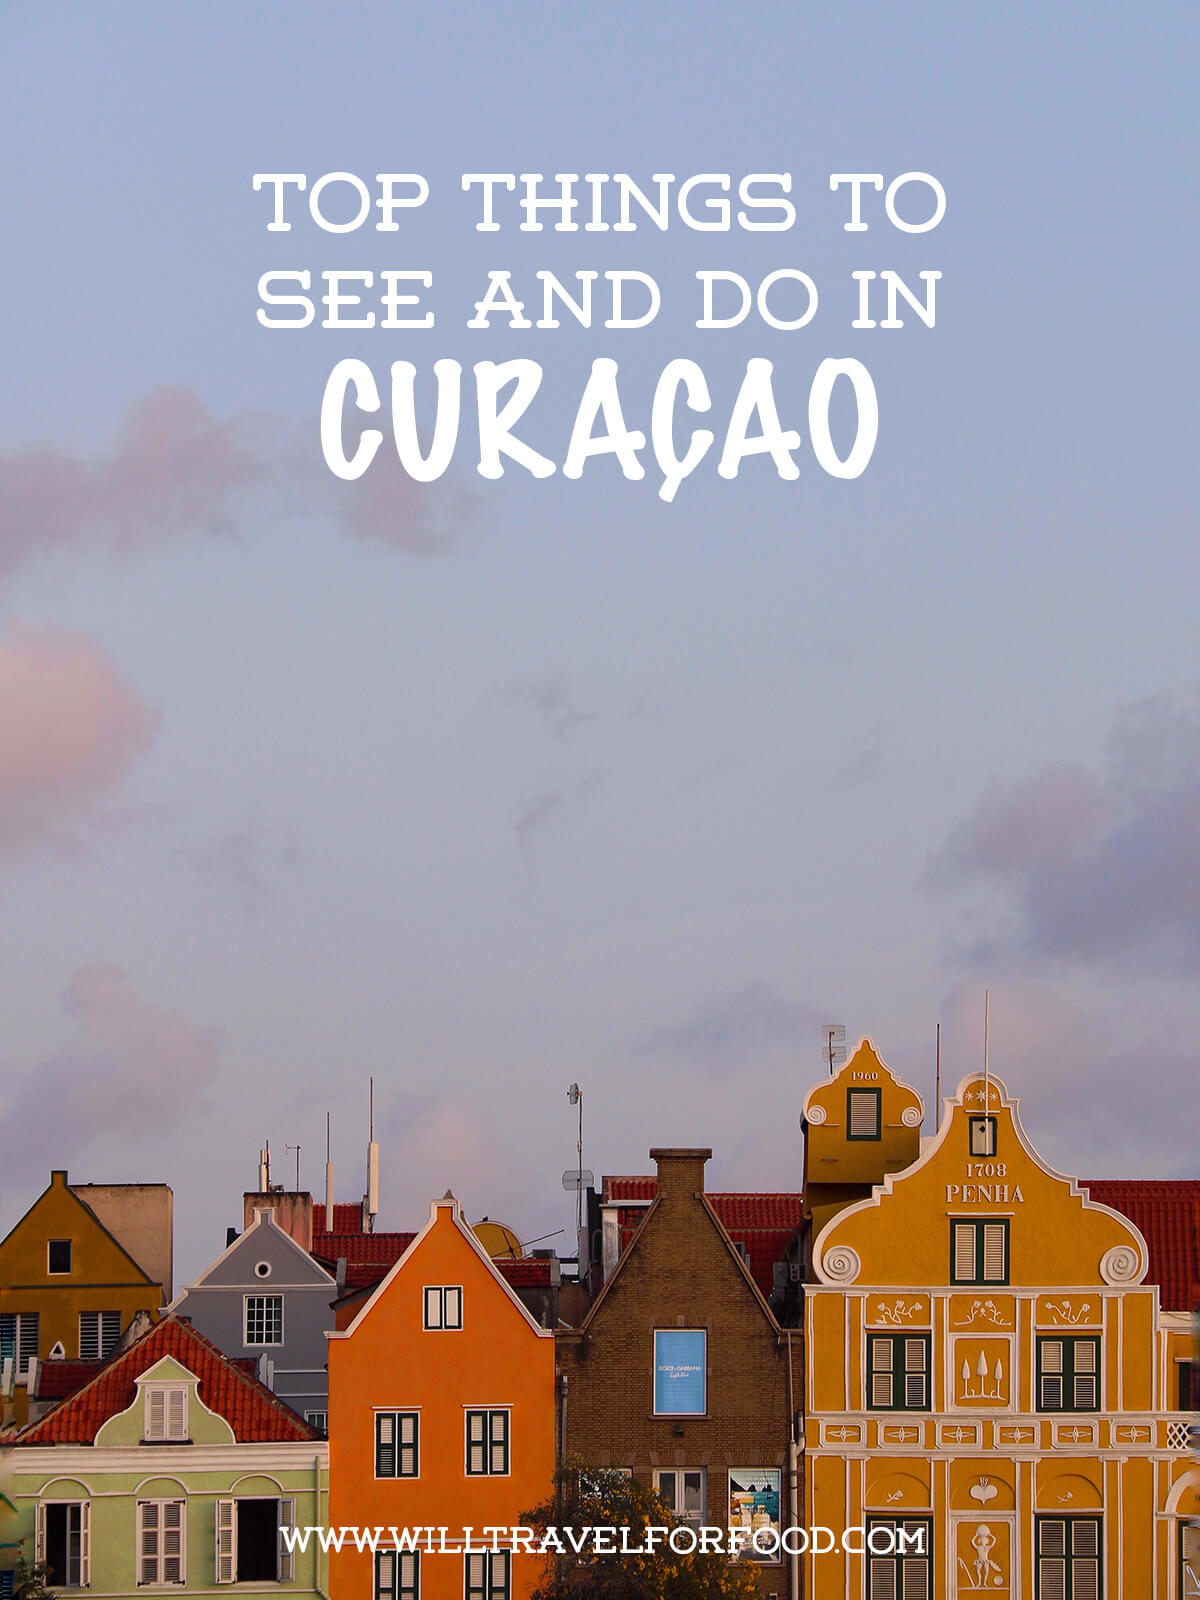 curacao-travel-guide © Will Travel for Food